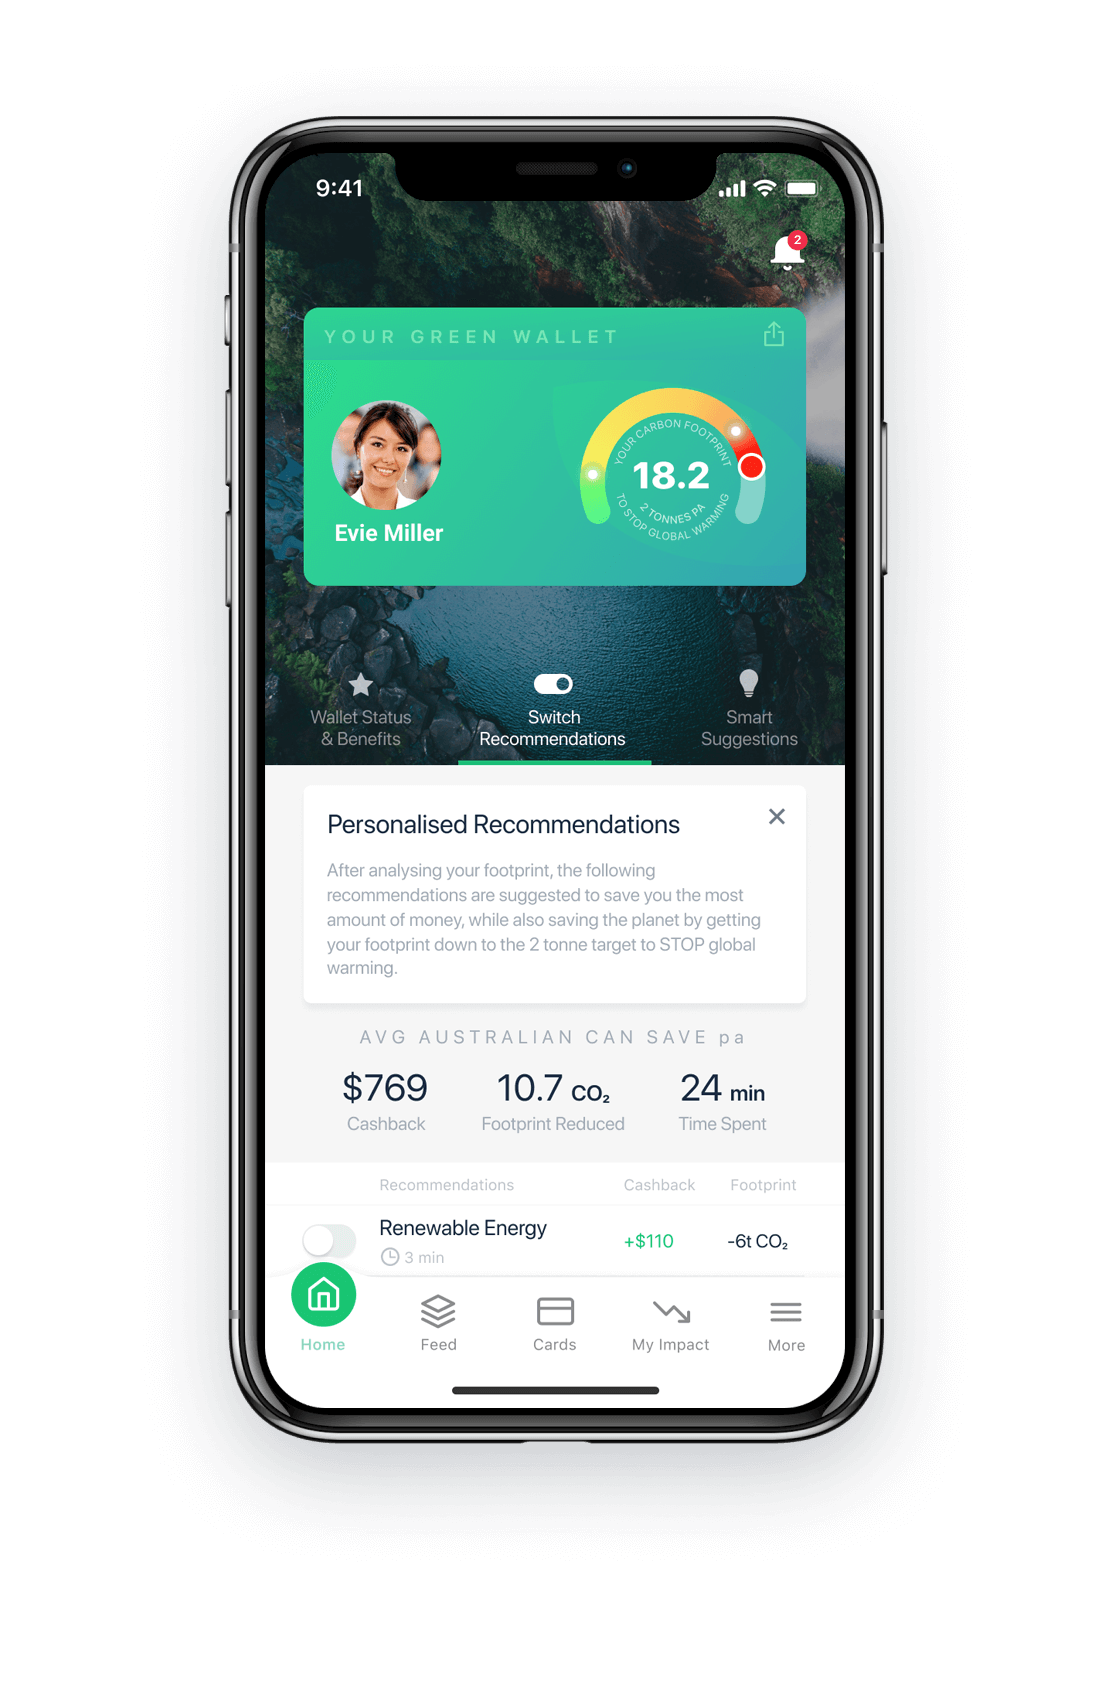 Green Wallet Phone App Recommendations  demo screen